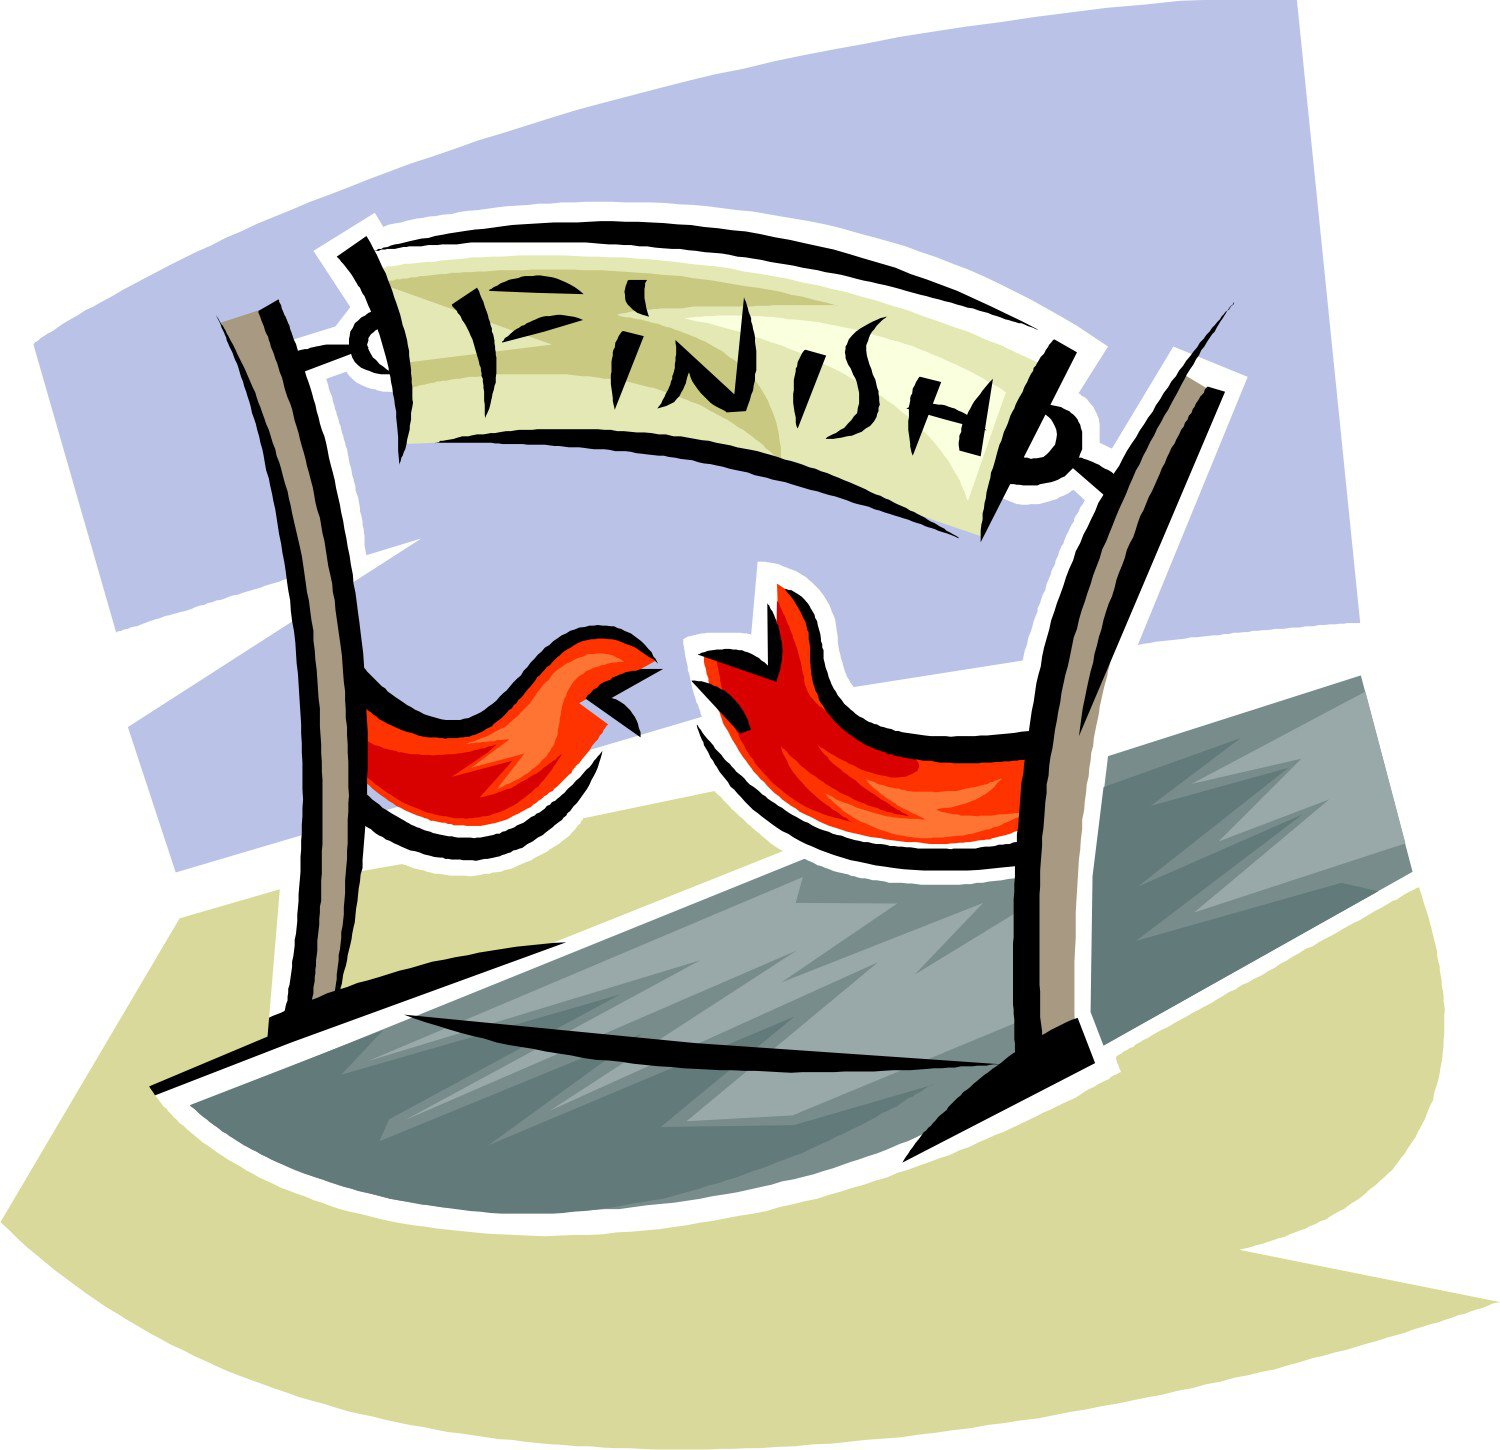 Race Car Finish Line Clipart - ClipArt Best